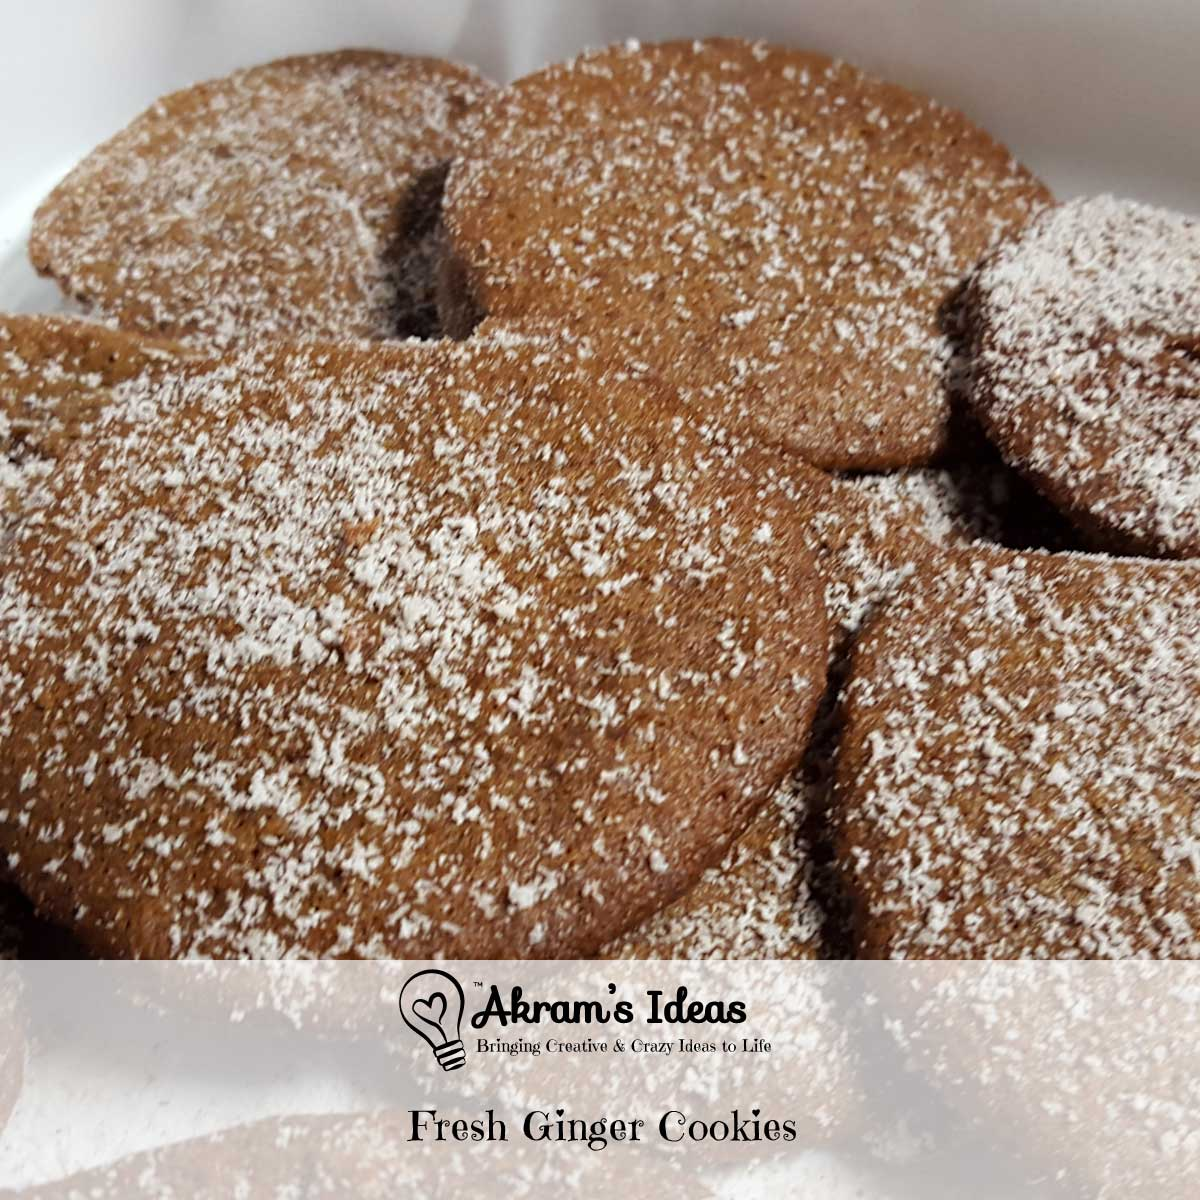 Akram's Ideas: Fresh Ginger Cookies